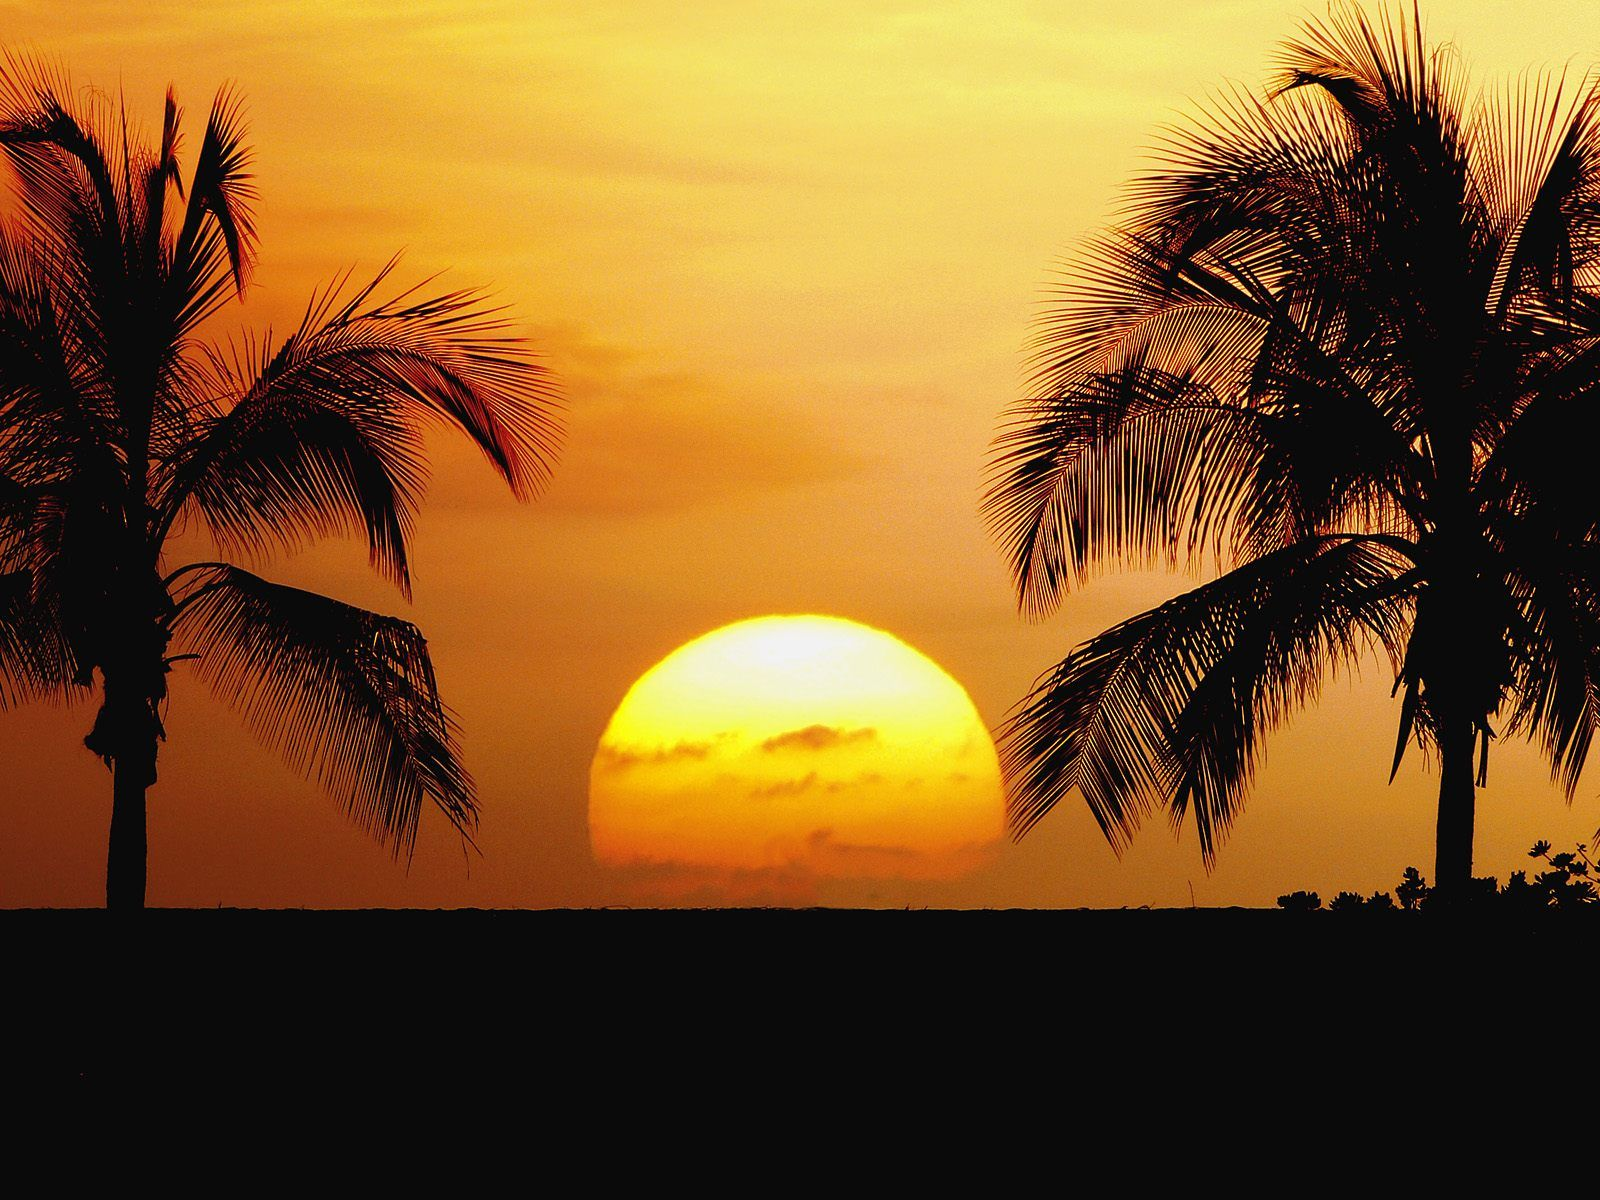 Hawaii Sunset Images amp Pictures   Becuo 1600x1200